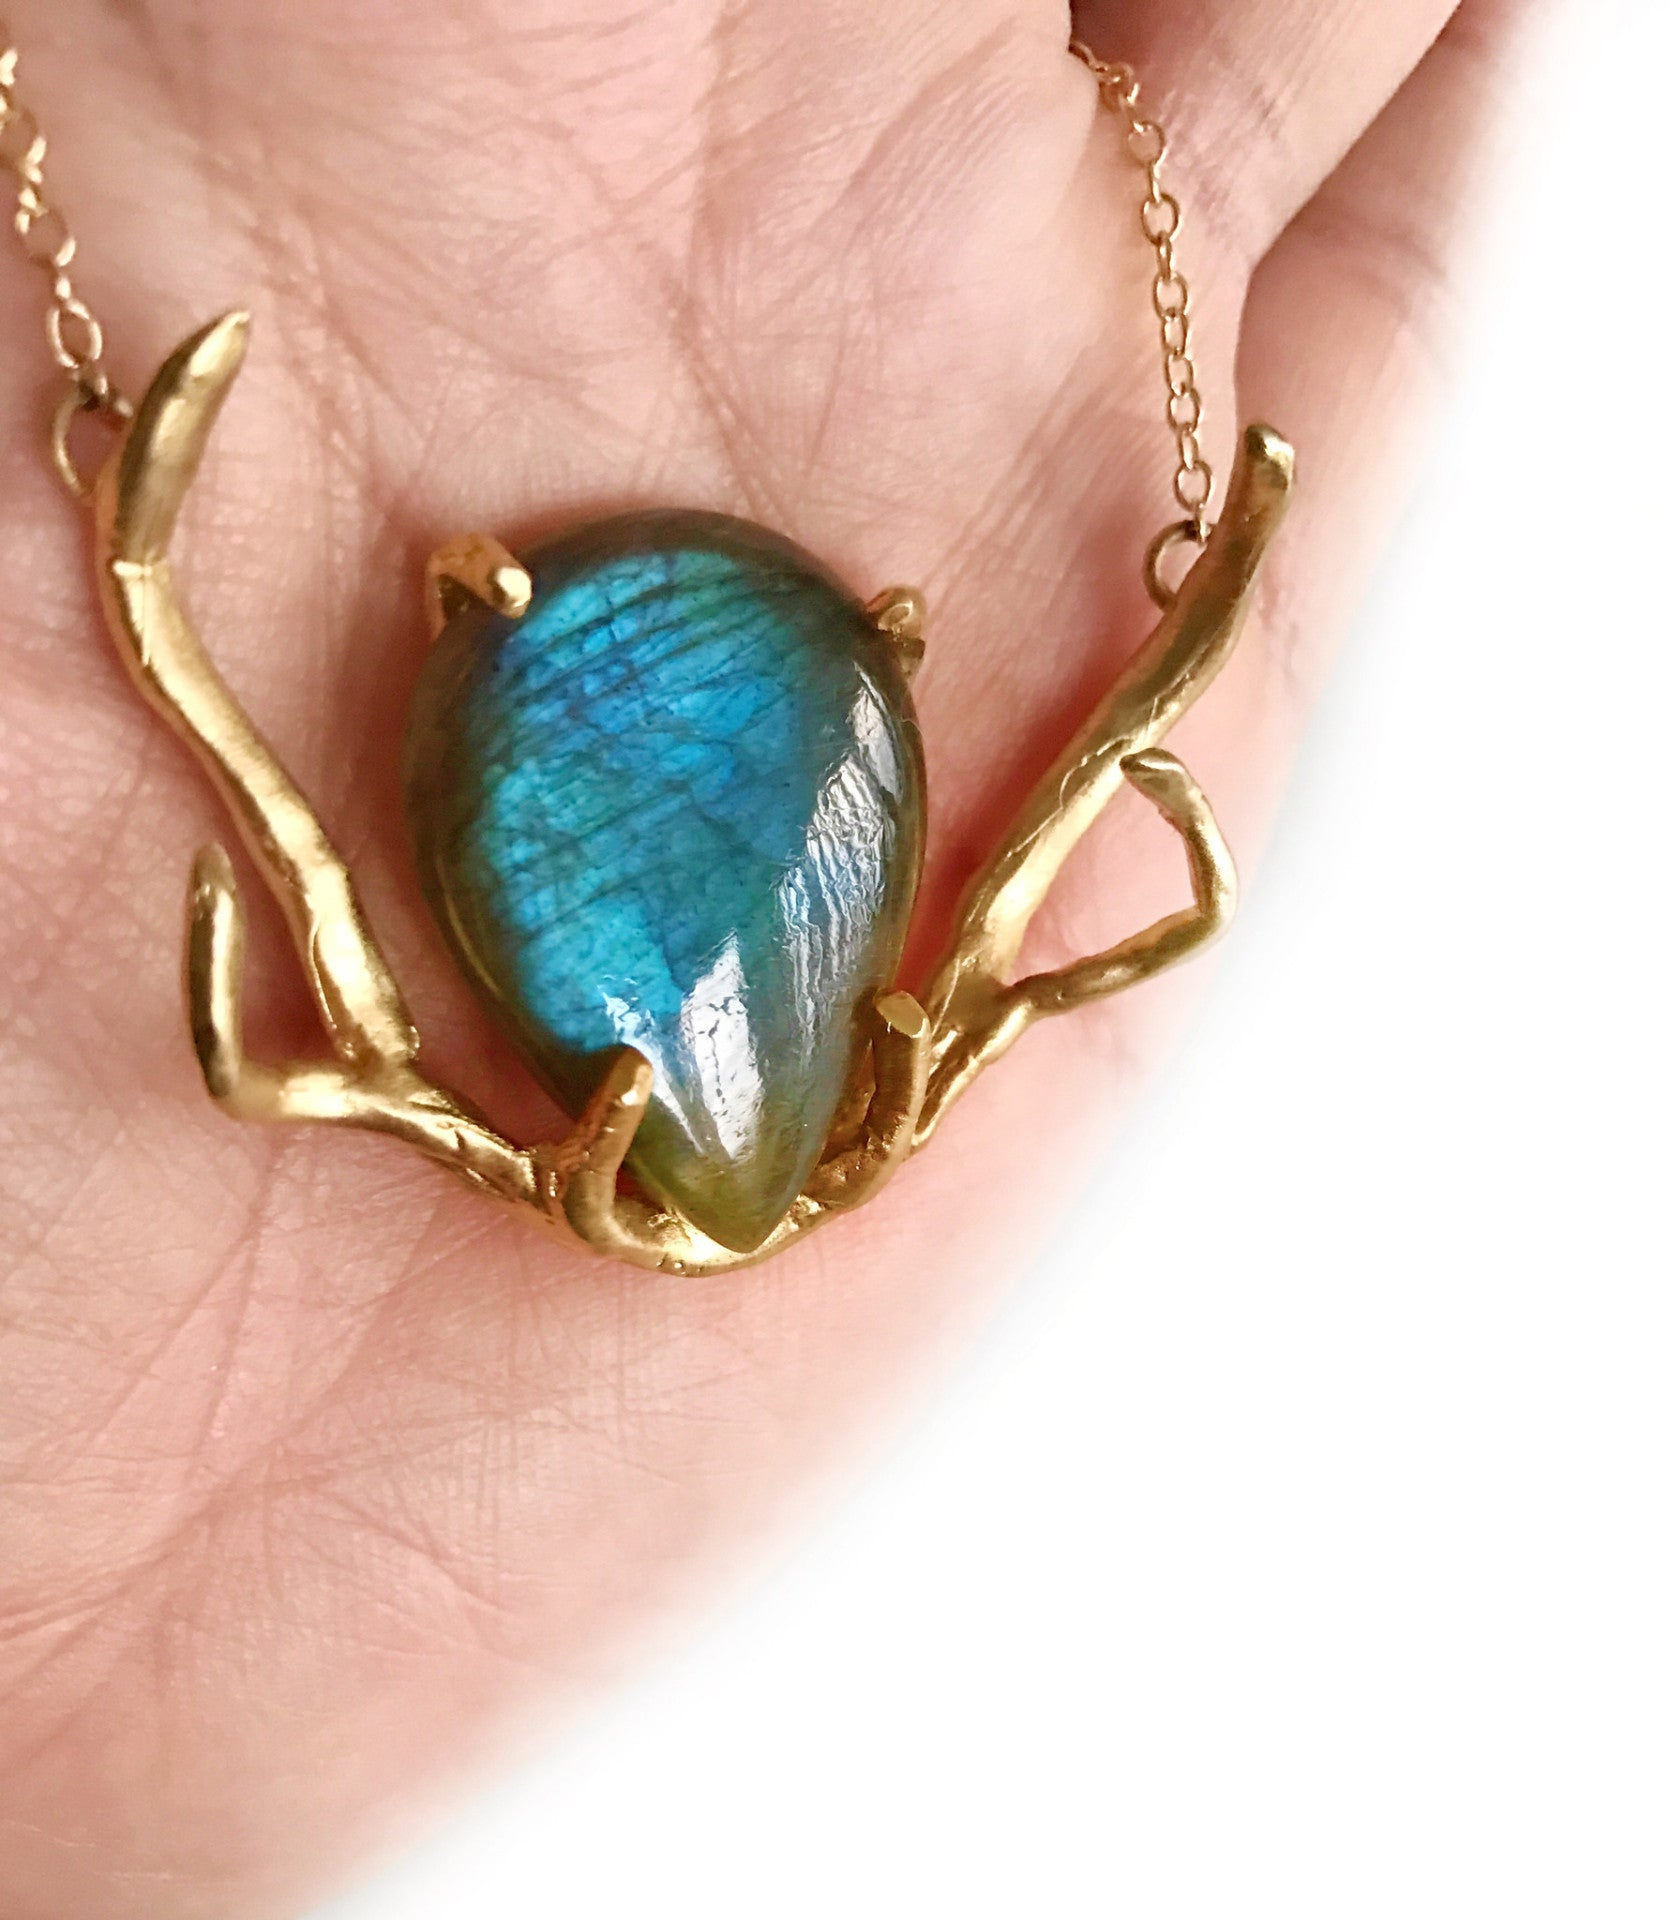 NEW! Huntress 24k Gold Vermeil 80cts Magical Fiery Labradorite Antler Necklace